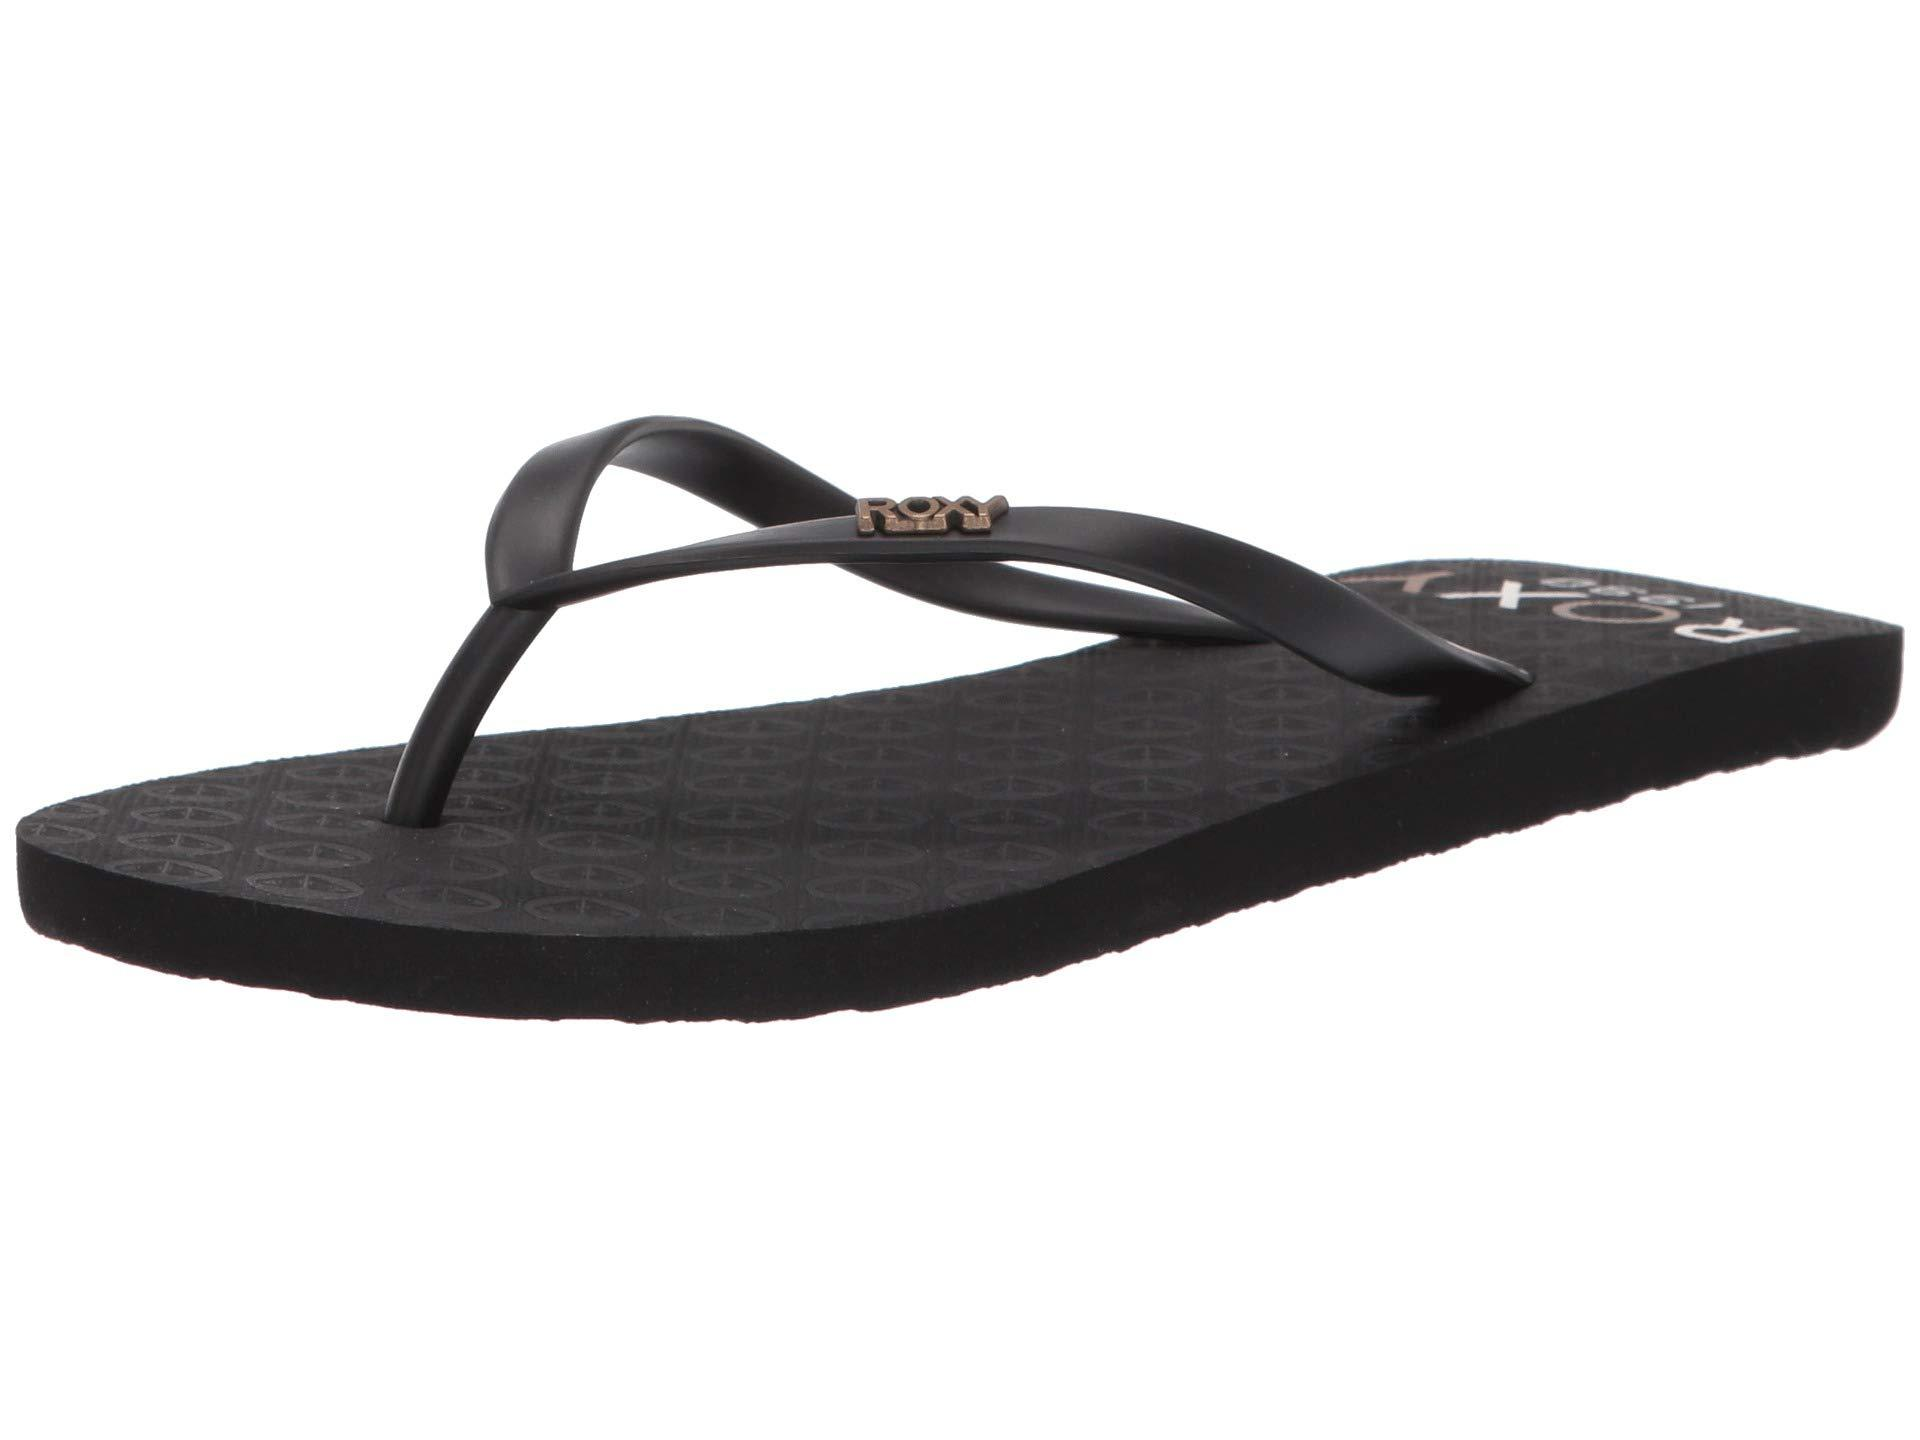 87042b9c4023 Roxy - Viva Stamp Ii (black Multi) Women s Sandals - Lyst. View fullscreen